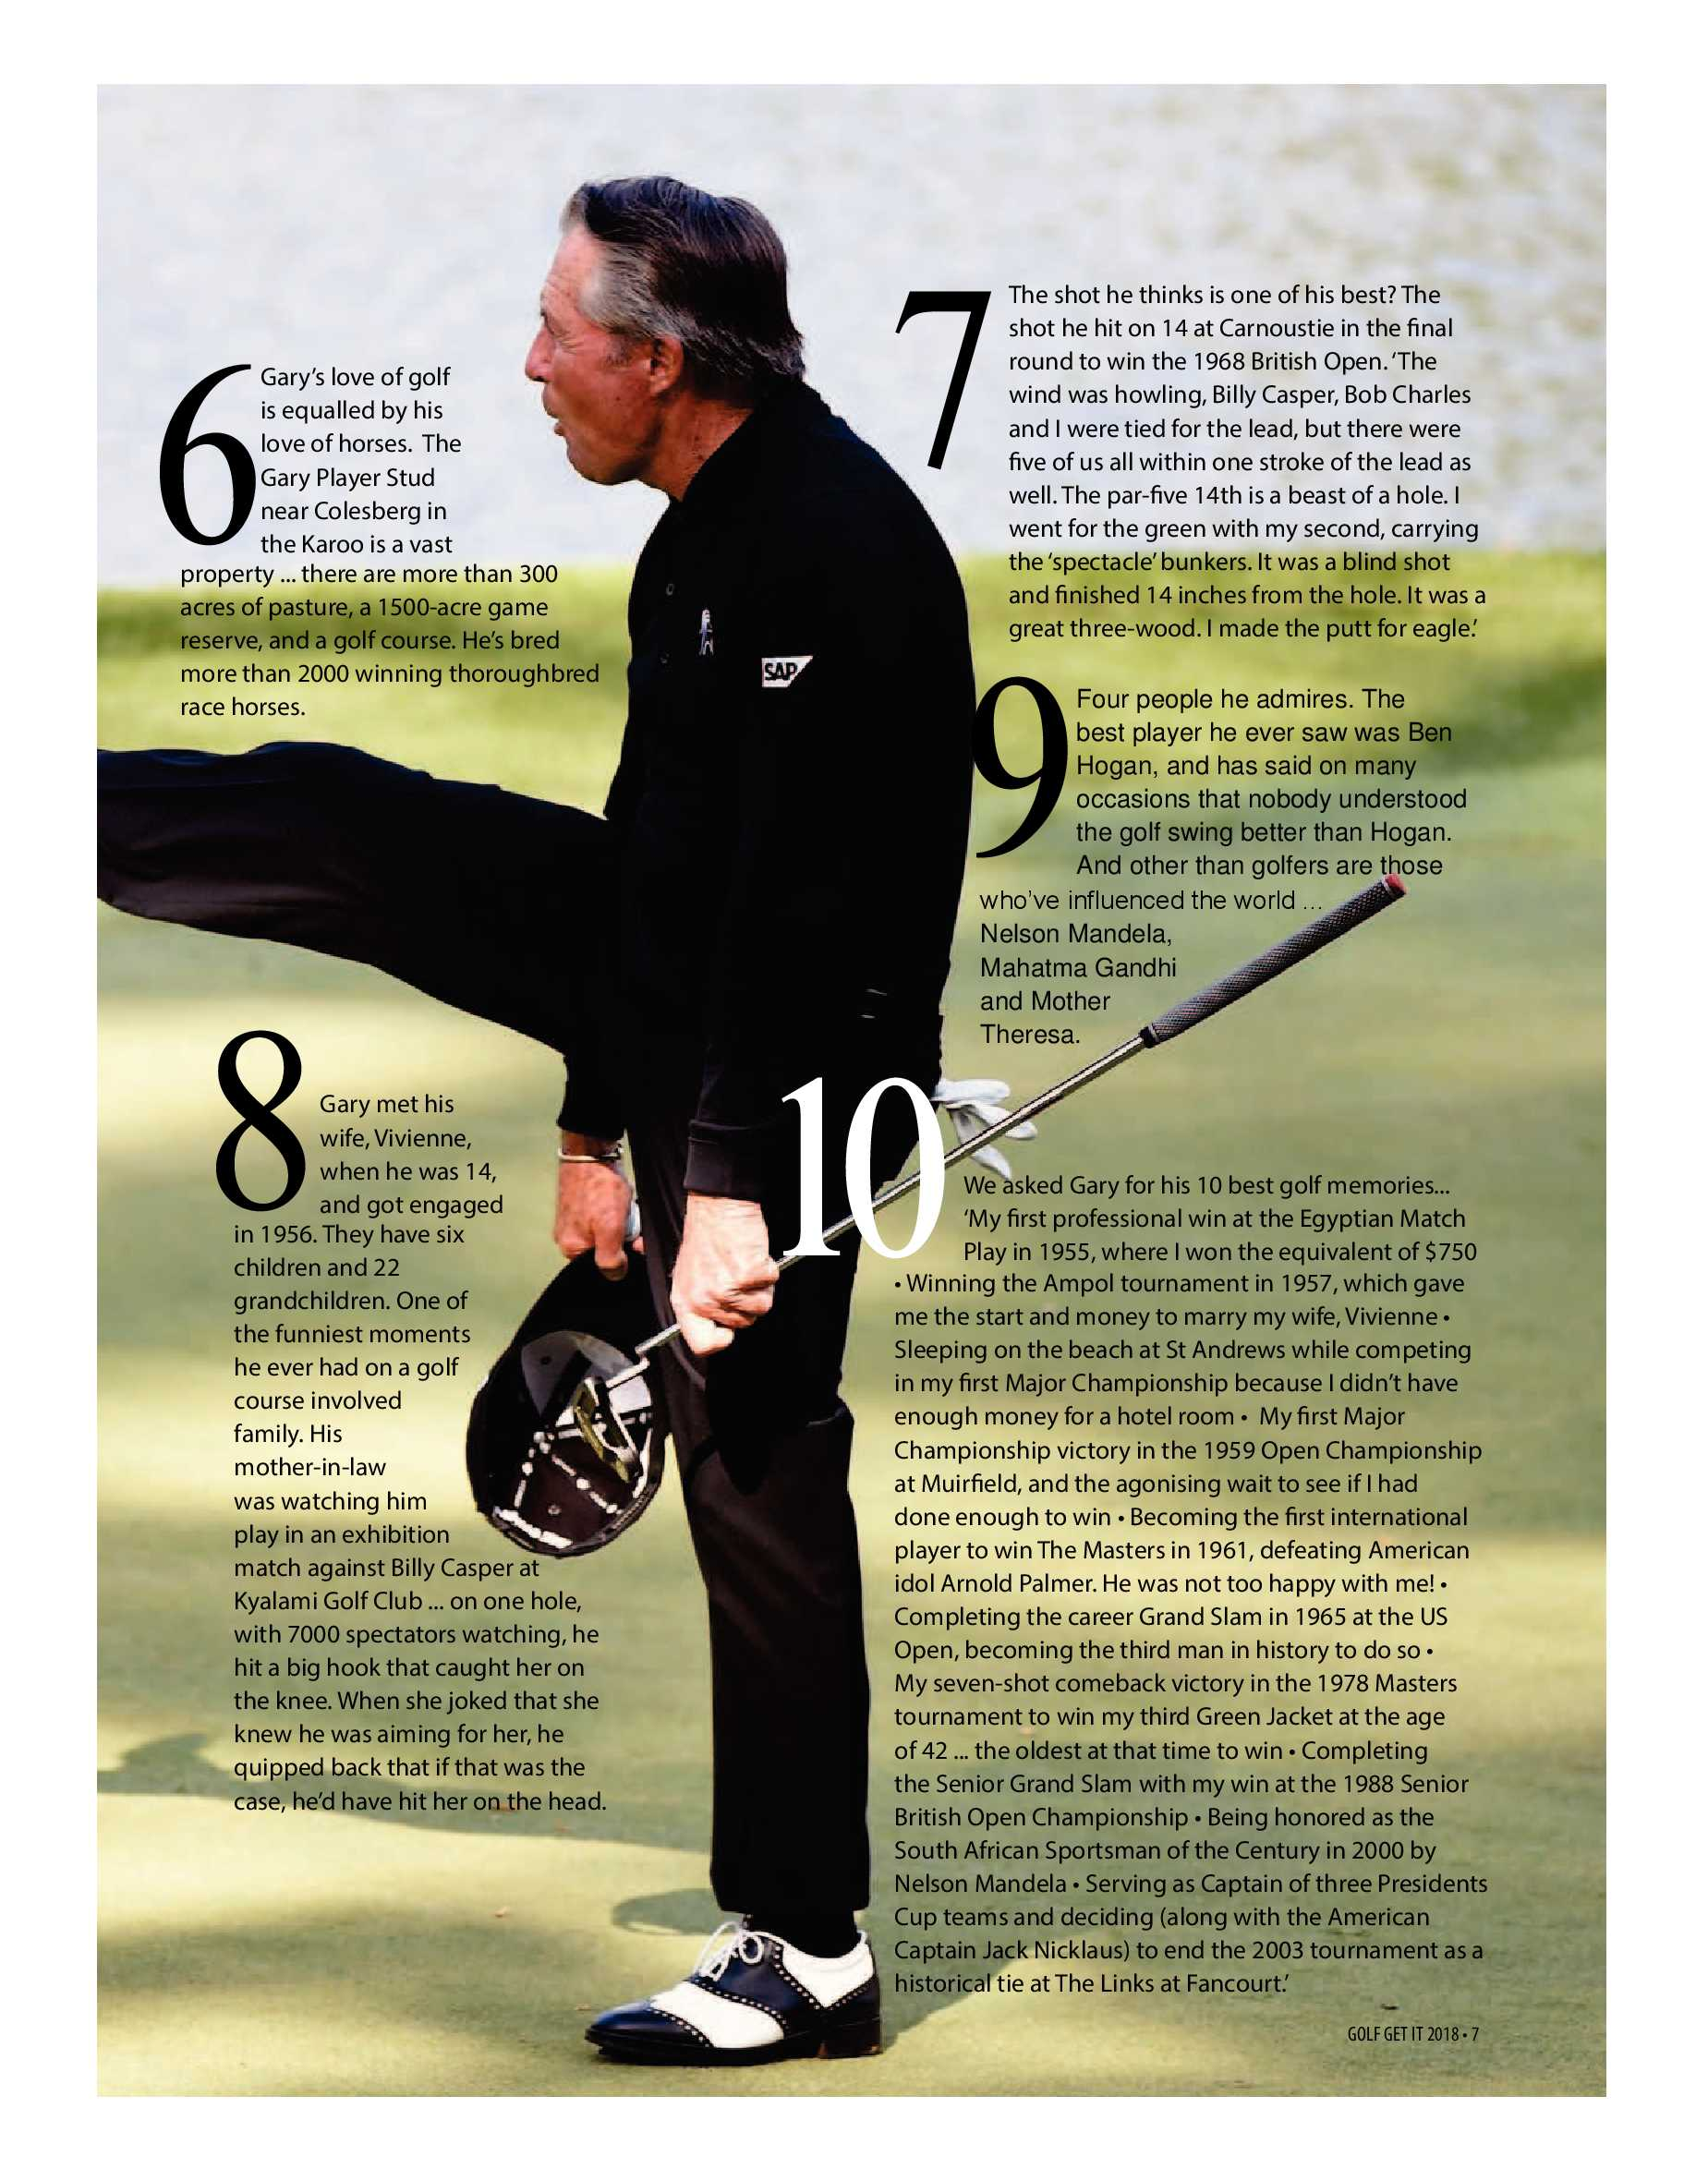 get-it-golf-epapers-page-7